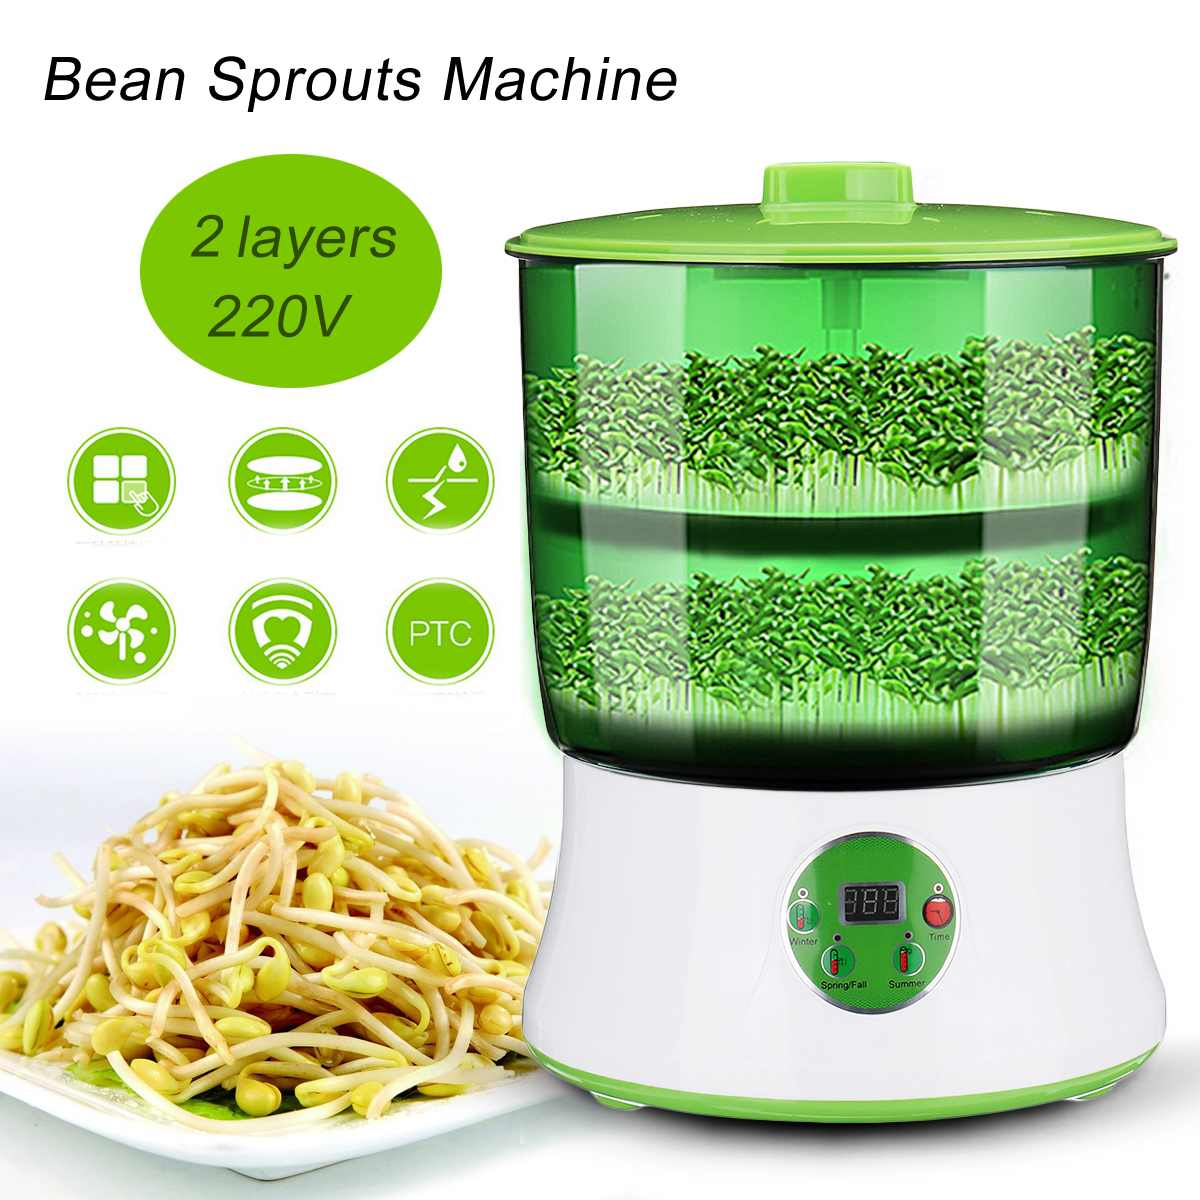 Cereal Growing Machine Buy on Amazon and Aliexpress